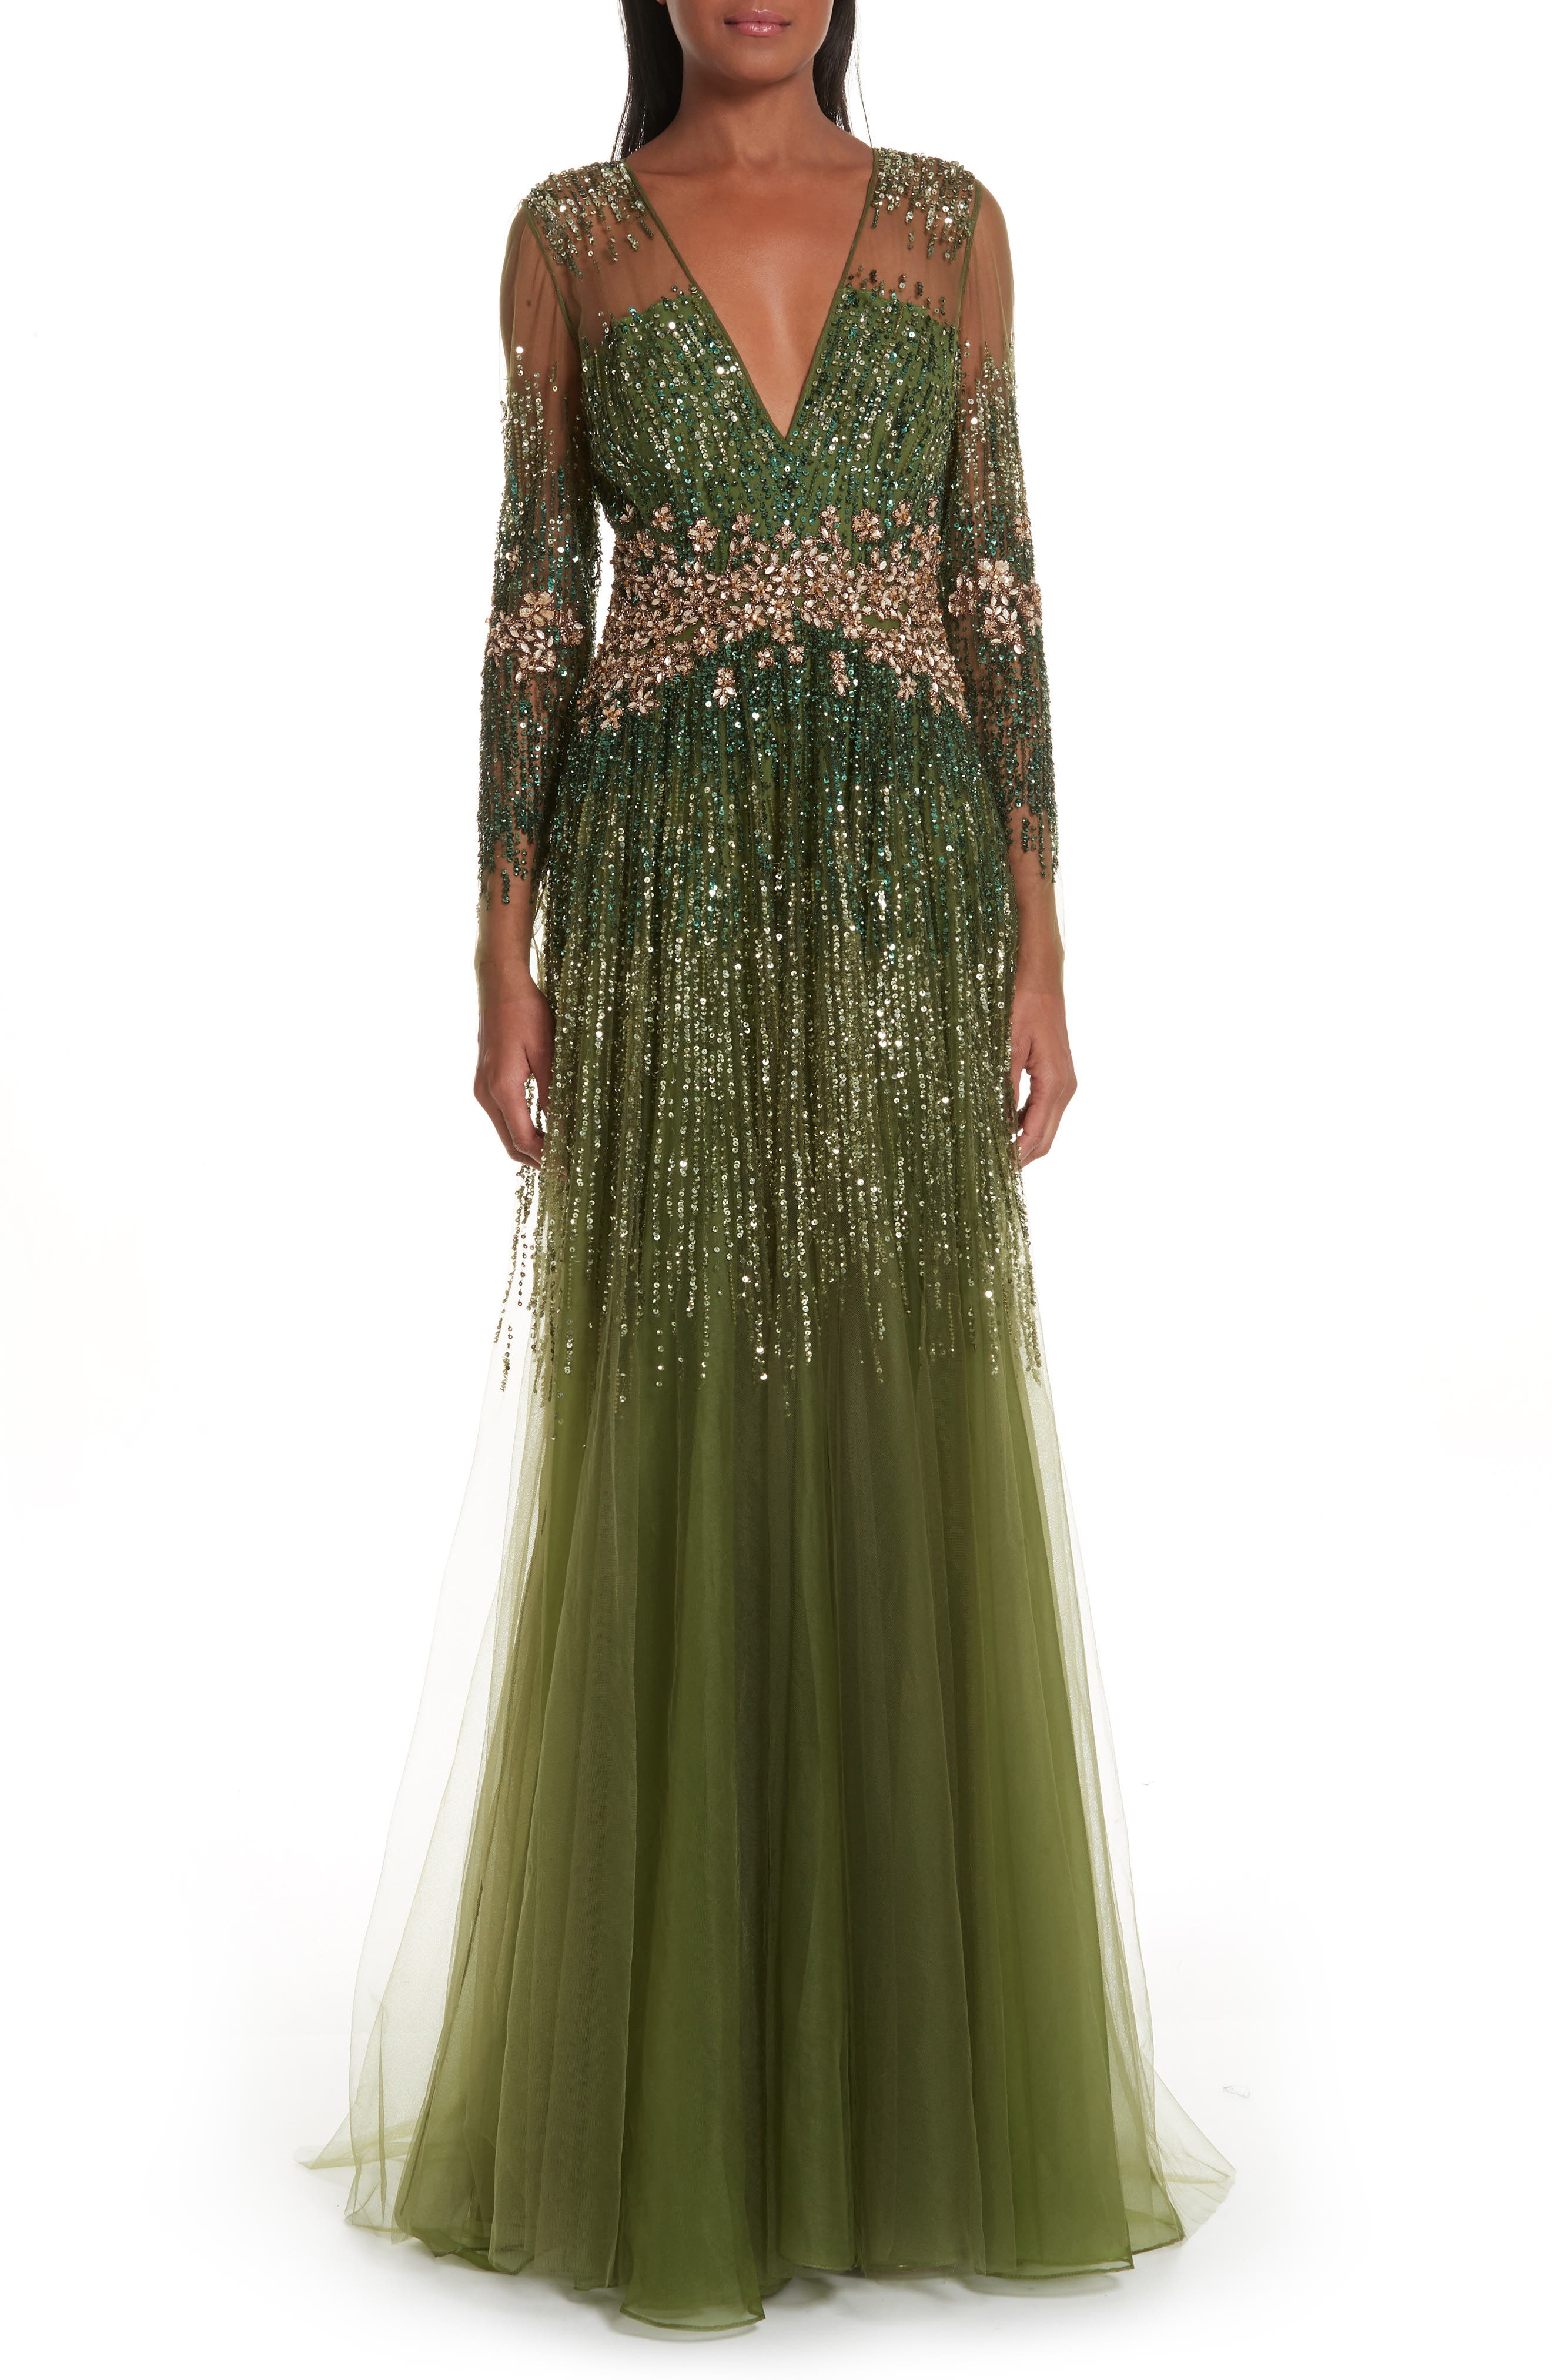 PAMELLA ROLAND, Crystal Embellished A-Line Gown, Main thumbnail 1, color, SAGE MULTI